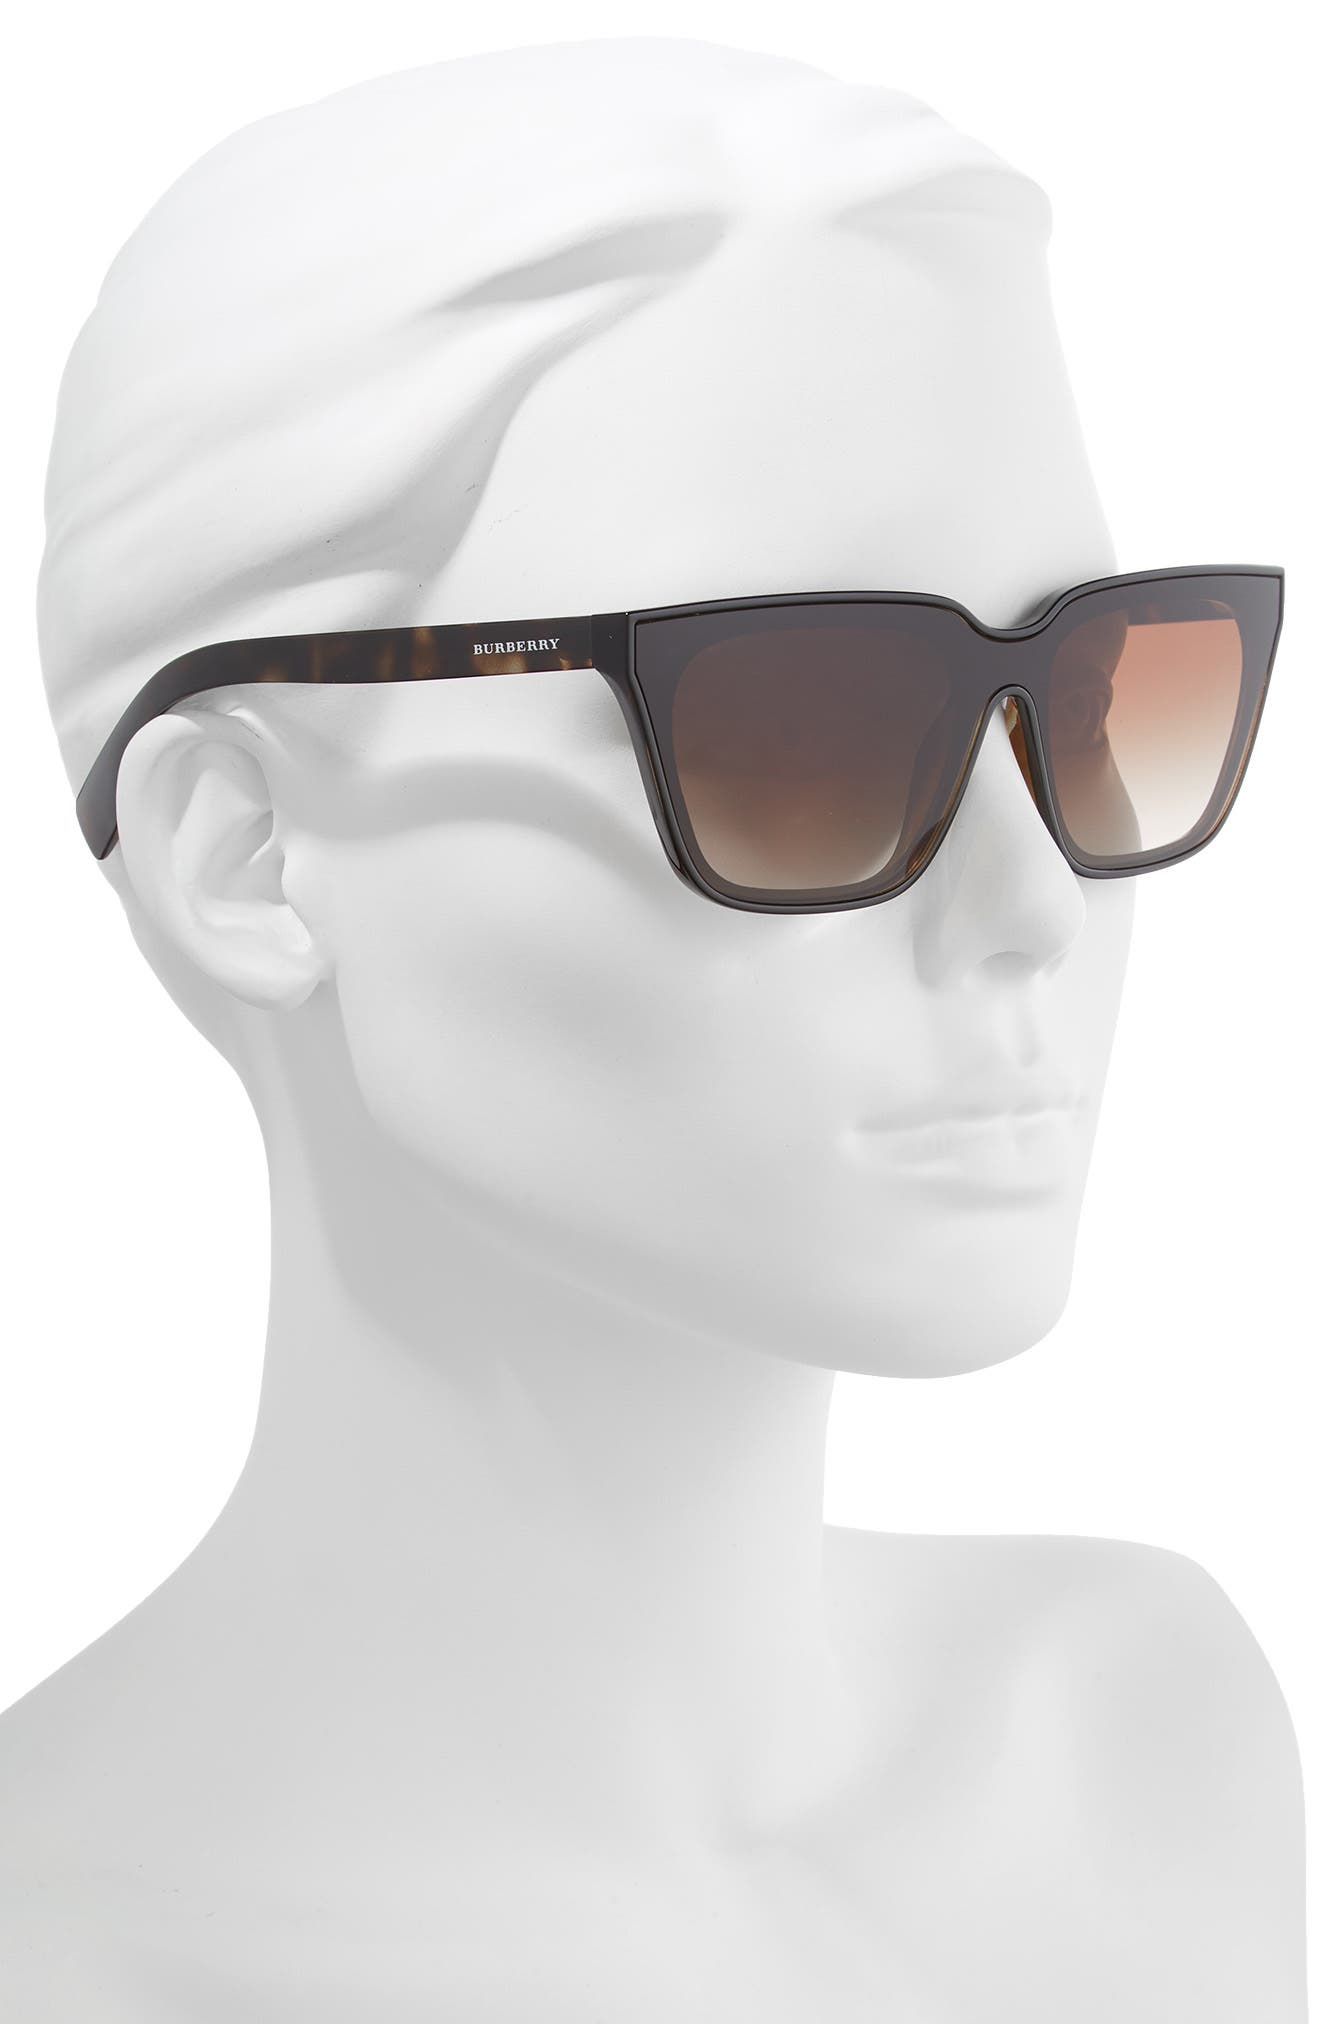 BURBERRY,                             40mm Square Sunglasses,                             Alternate thumbnail 2, color,                             BLACK/ DARK HAVANA GRADIENT